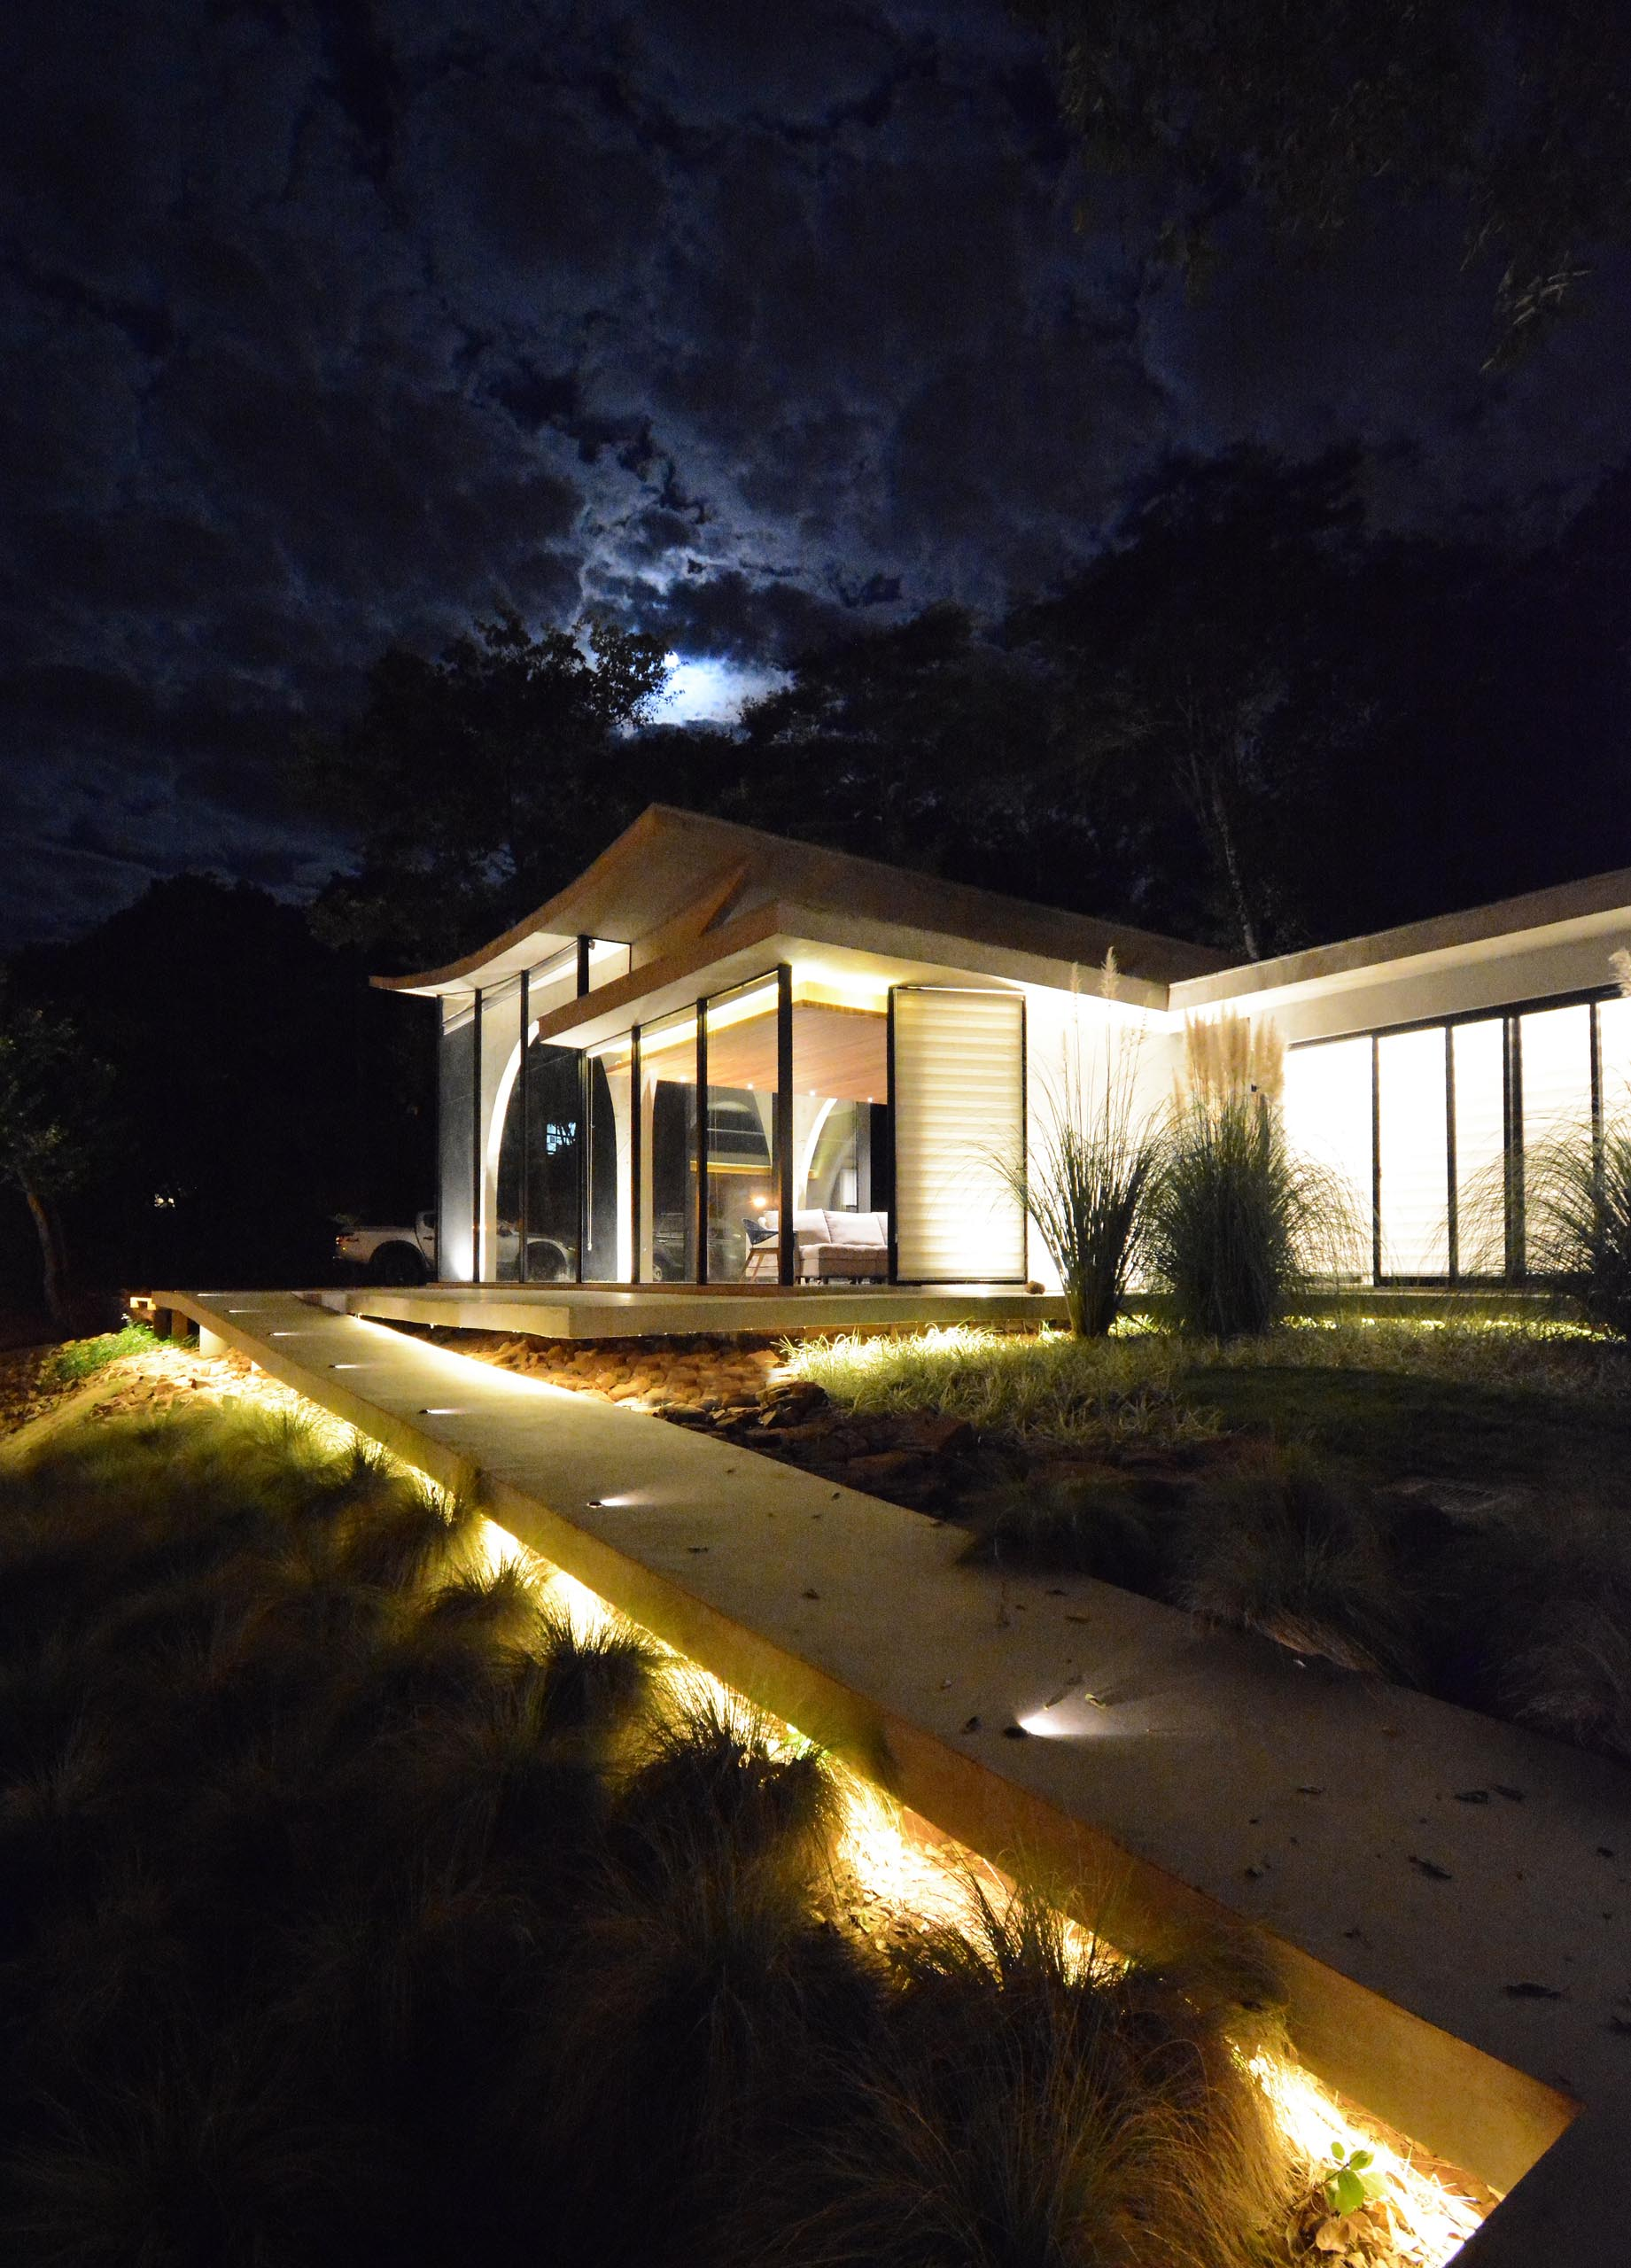 At the front of this modern home, there's a winding concrete path that's lit up at night, guiding people from the road up to the front door.